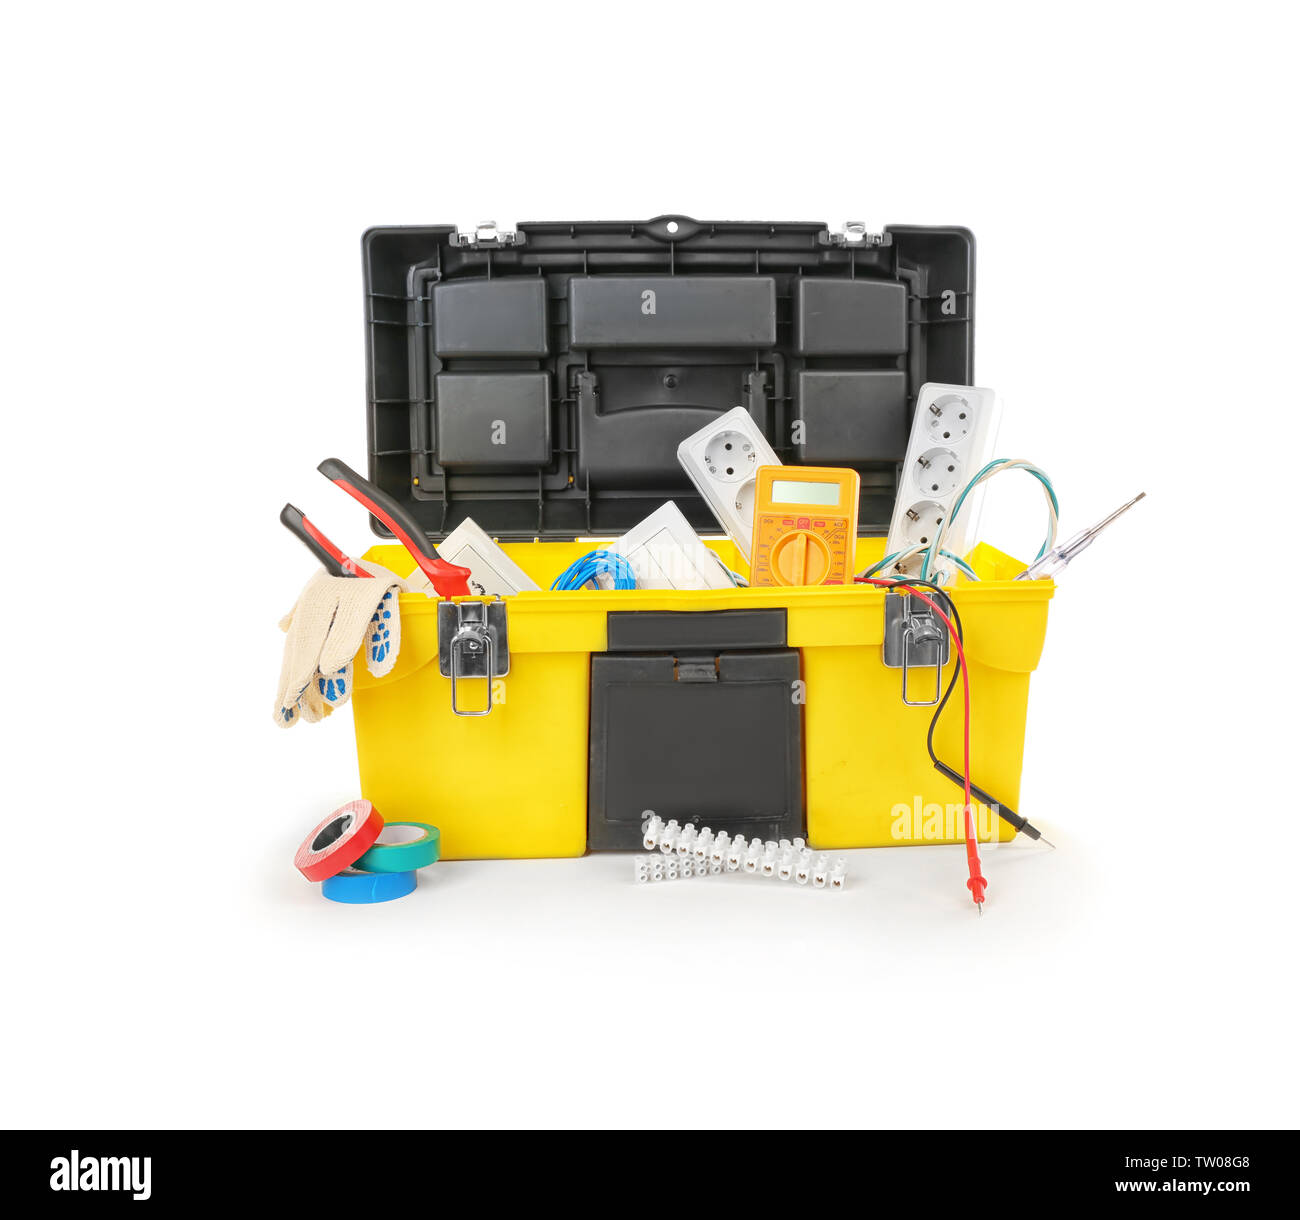 Chest with tools on white background - Stock Image